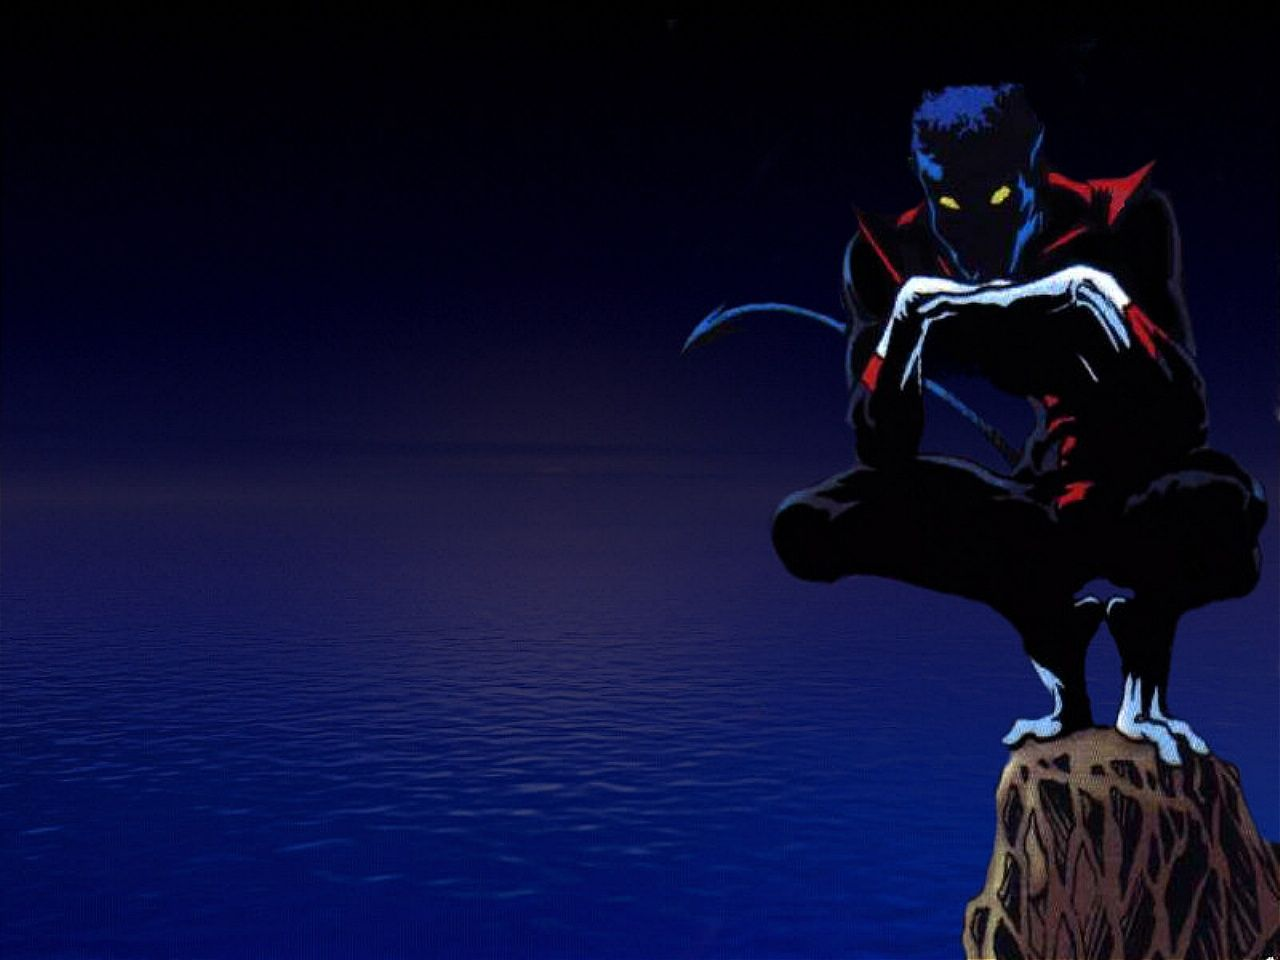 X Men Nightcrawler Wallpaper